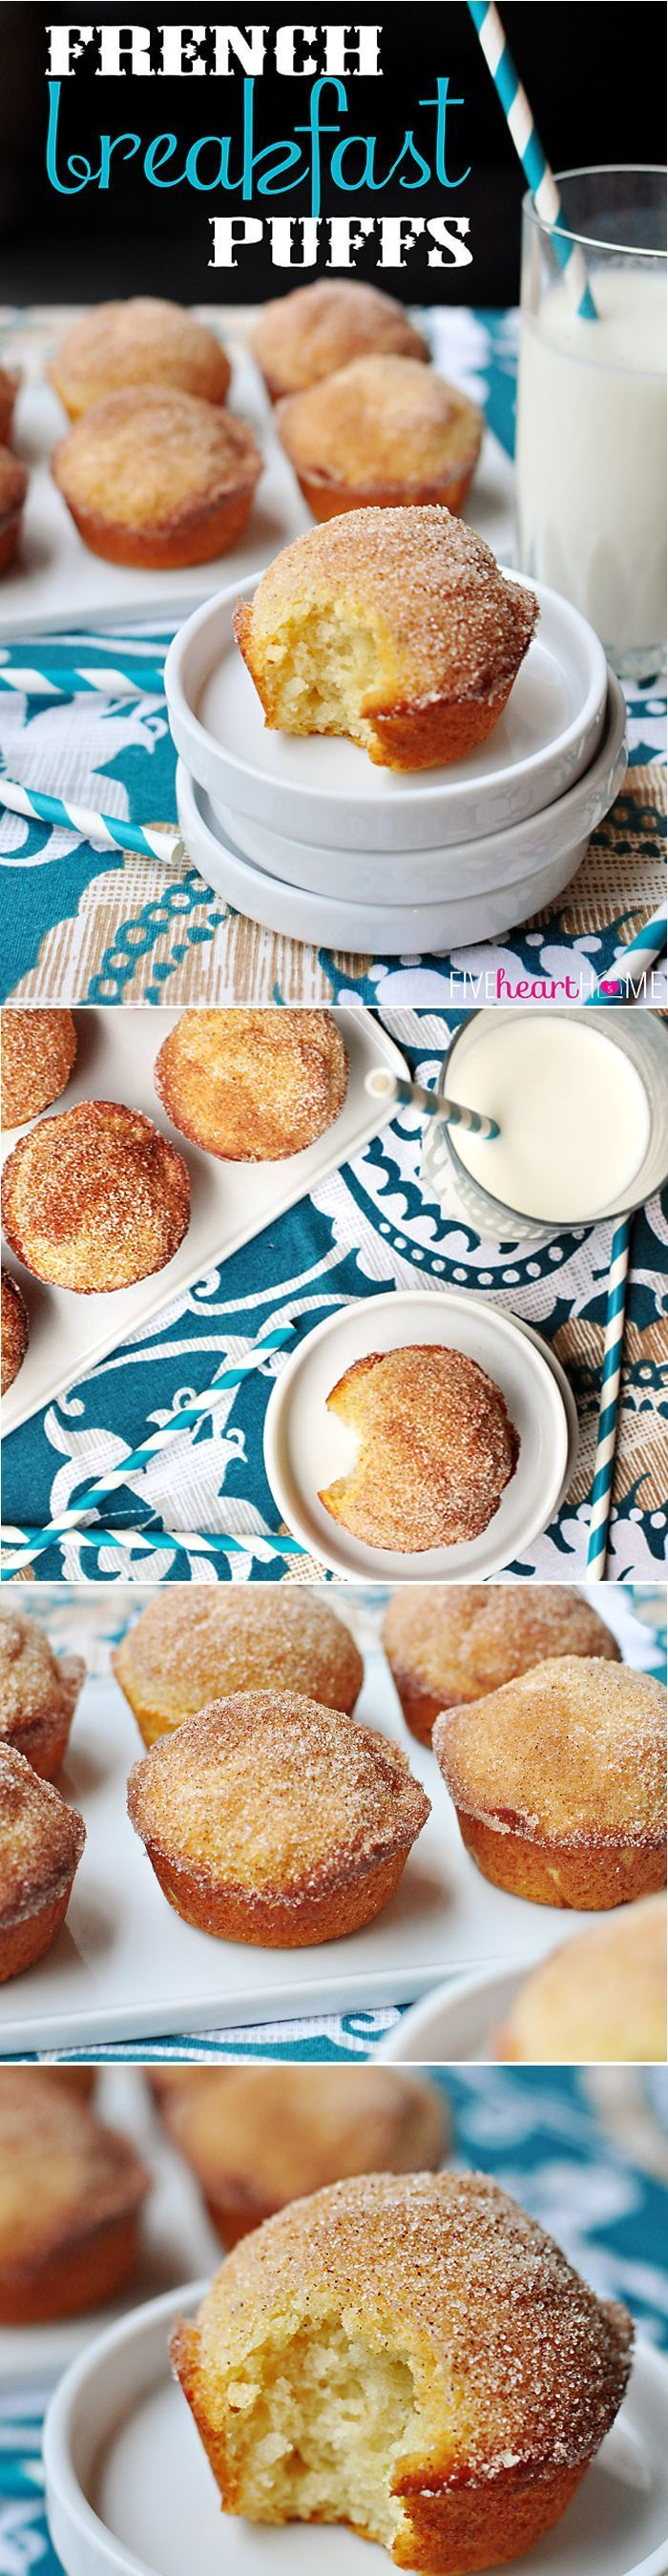 French Breakfast Puffs ~ tender vanilla muffins are drenched in melted butter and dipped in cinnamon sugar for a sweet and crunchy coating that makes breakfast time a treat! | http://FiveHeartHome.com